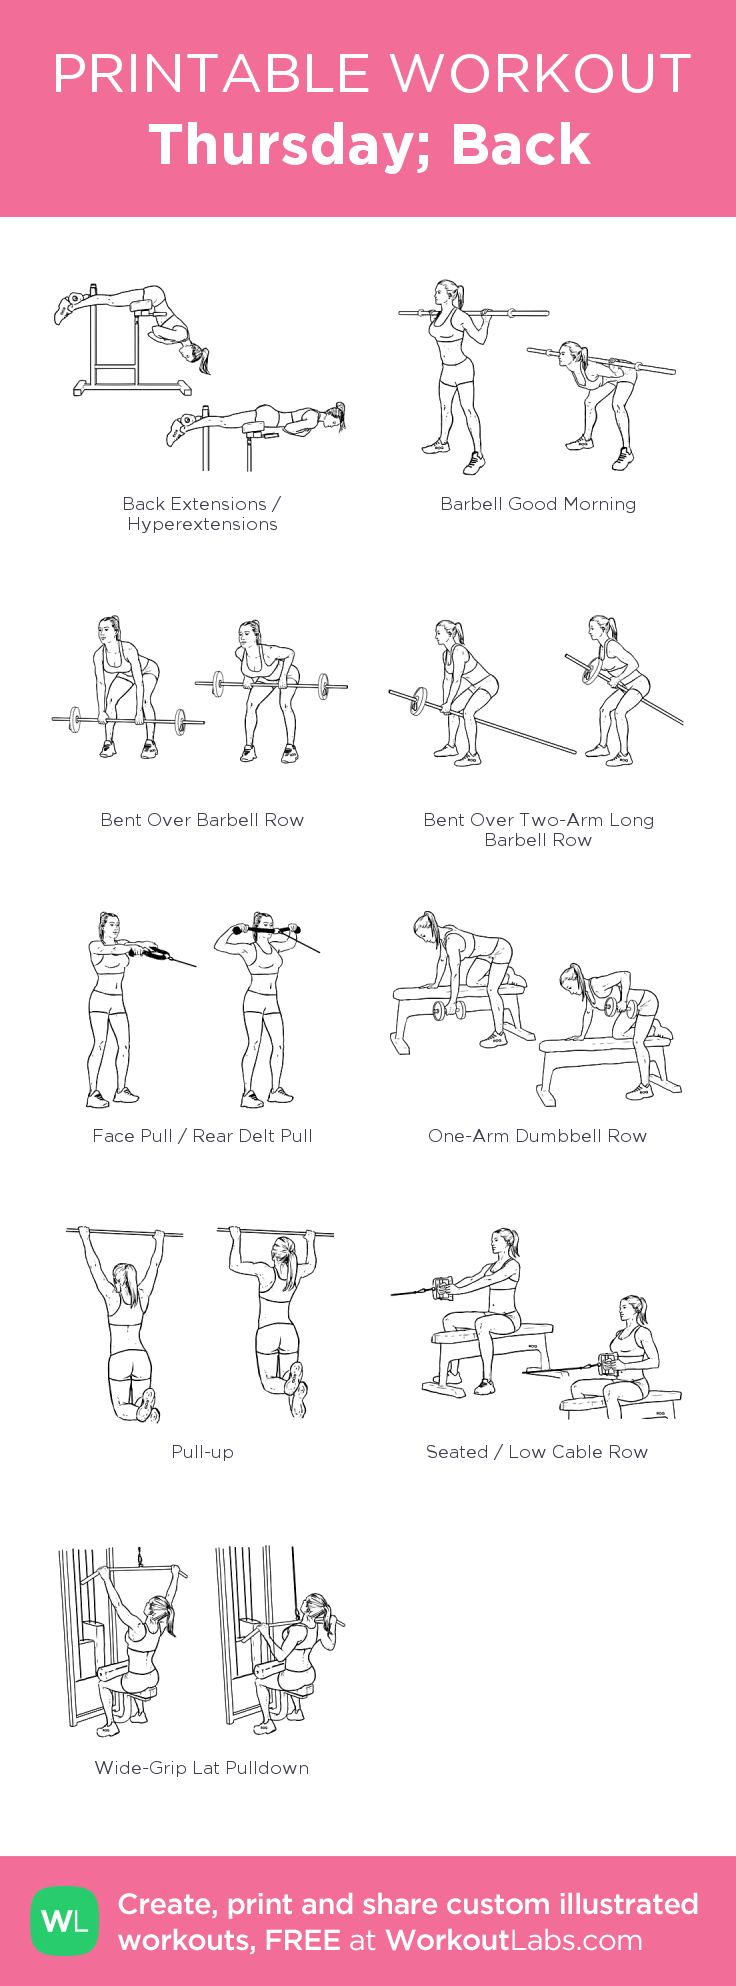 Thursday; Back: my visual workout created at WorkoutLabs.com • Click through to customize and download as a FREE PDF! #customworkout